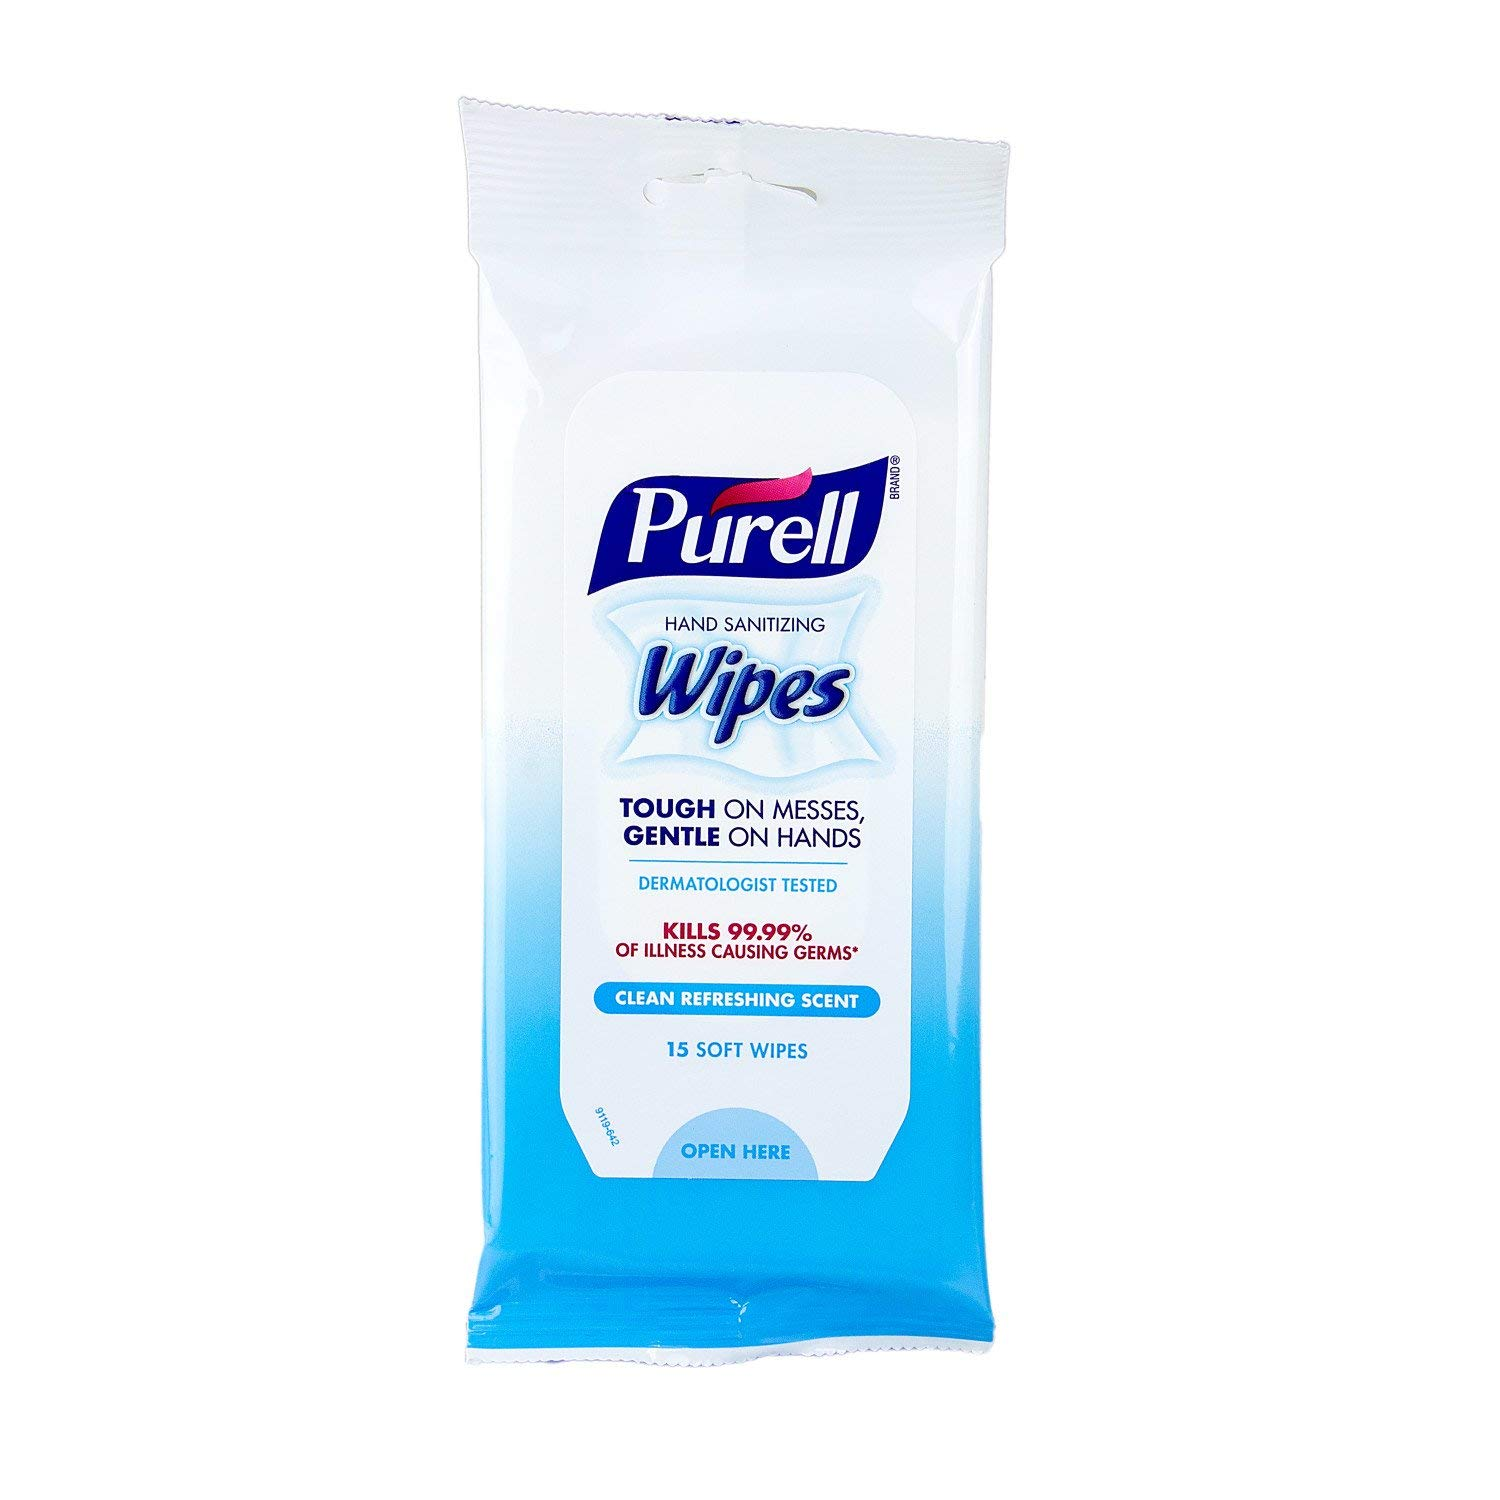 Purell hand sanitizing wipes, clean refreshing scent